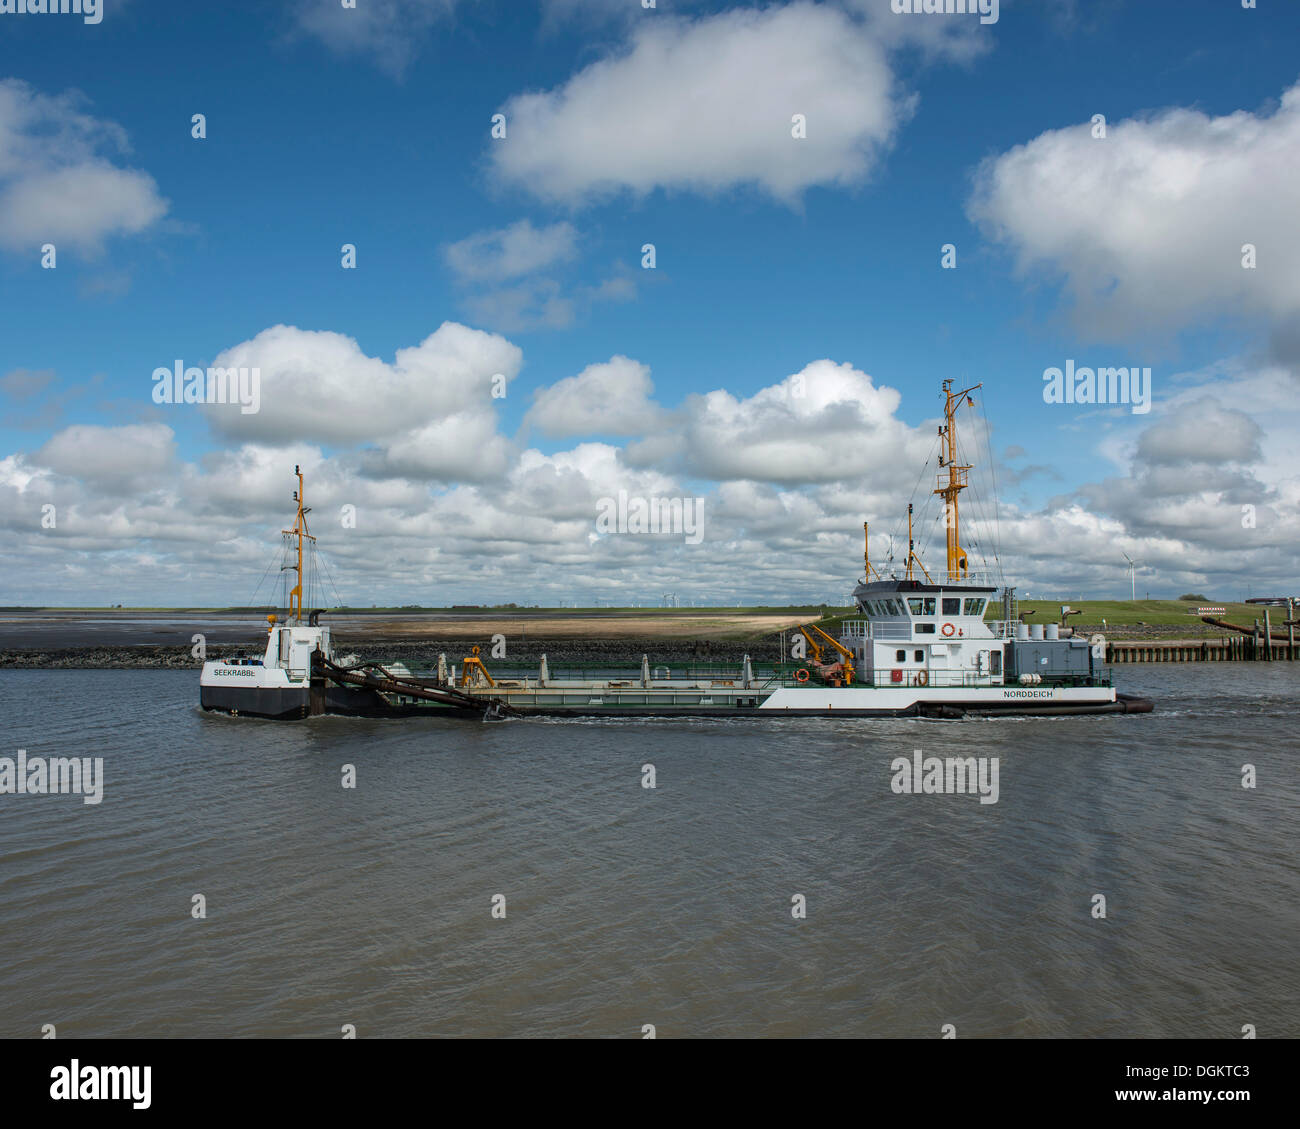 Hopper dredger, Seekrabbe, at the port entry of Norddeich, Lower Saxony Wadden Sea - Stock Image